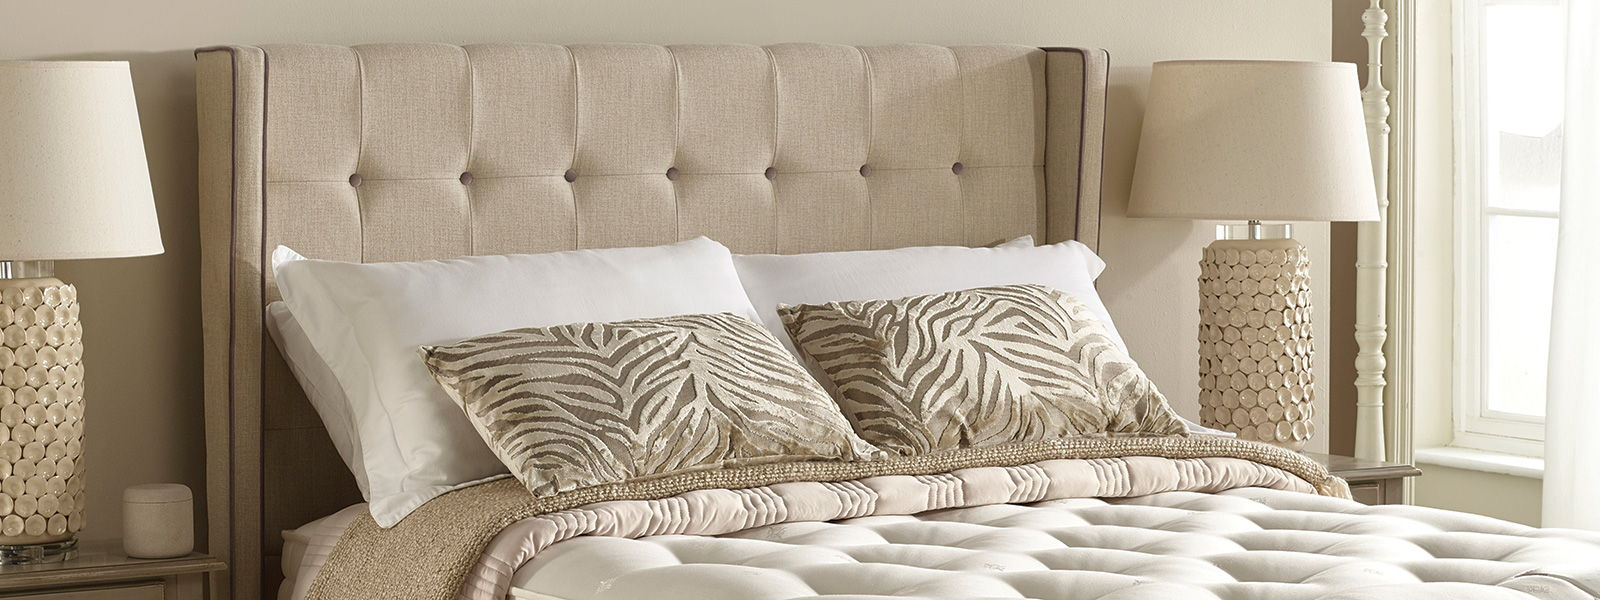 Headboards and bespoke beds available in a wide range of fabric and styles